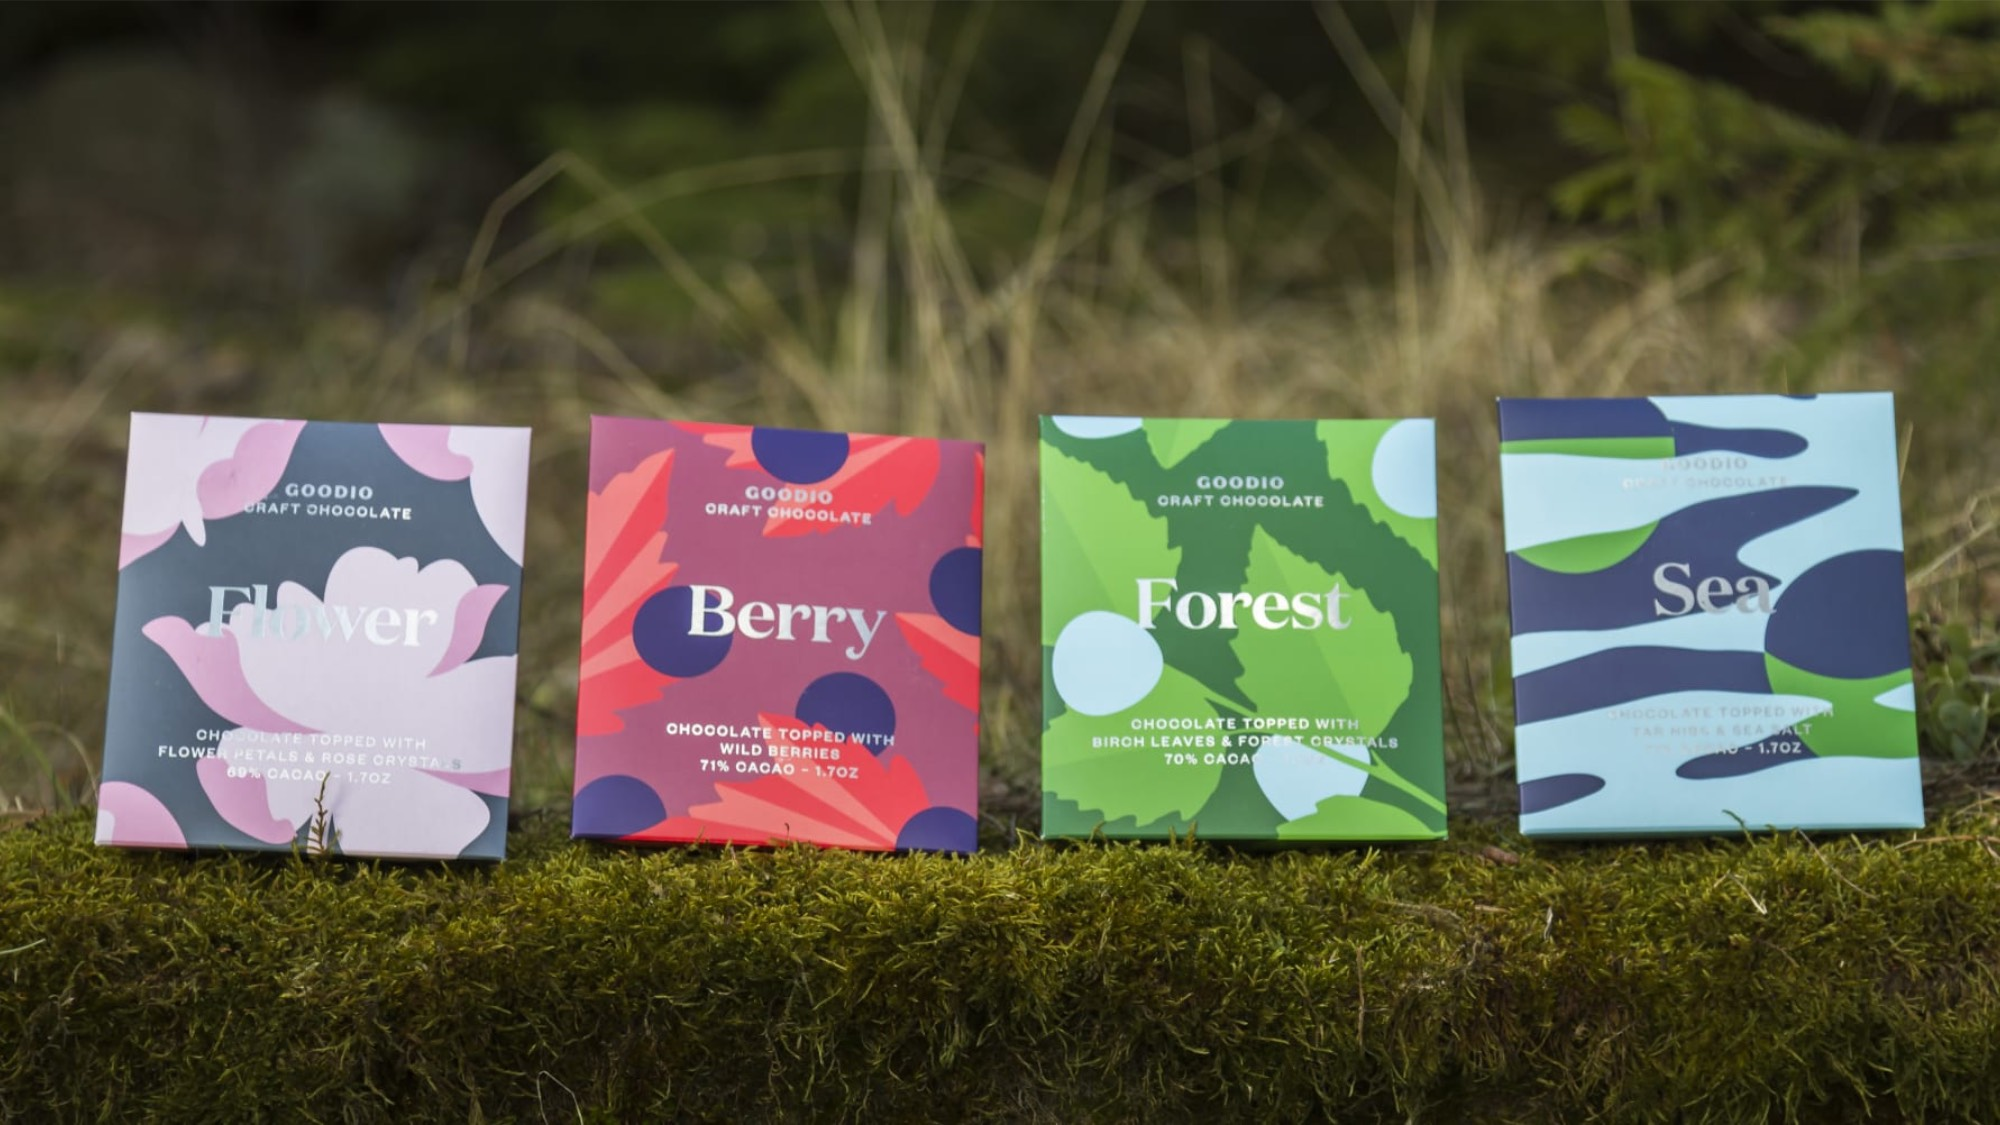 Goodio chocolate's named after nature